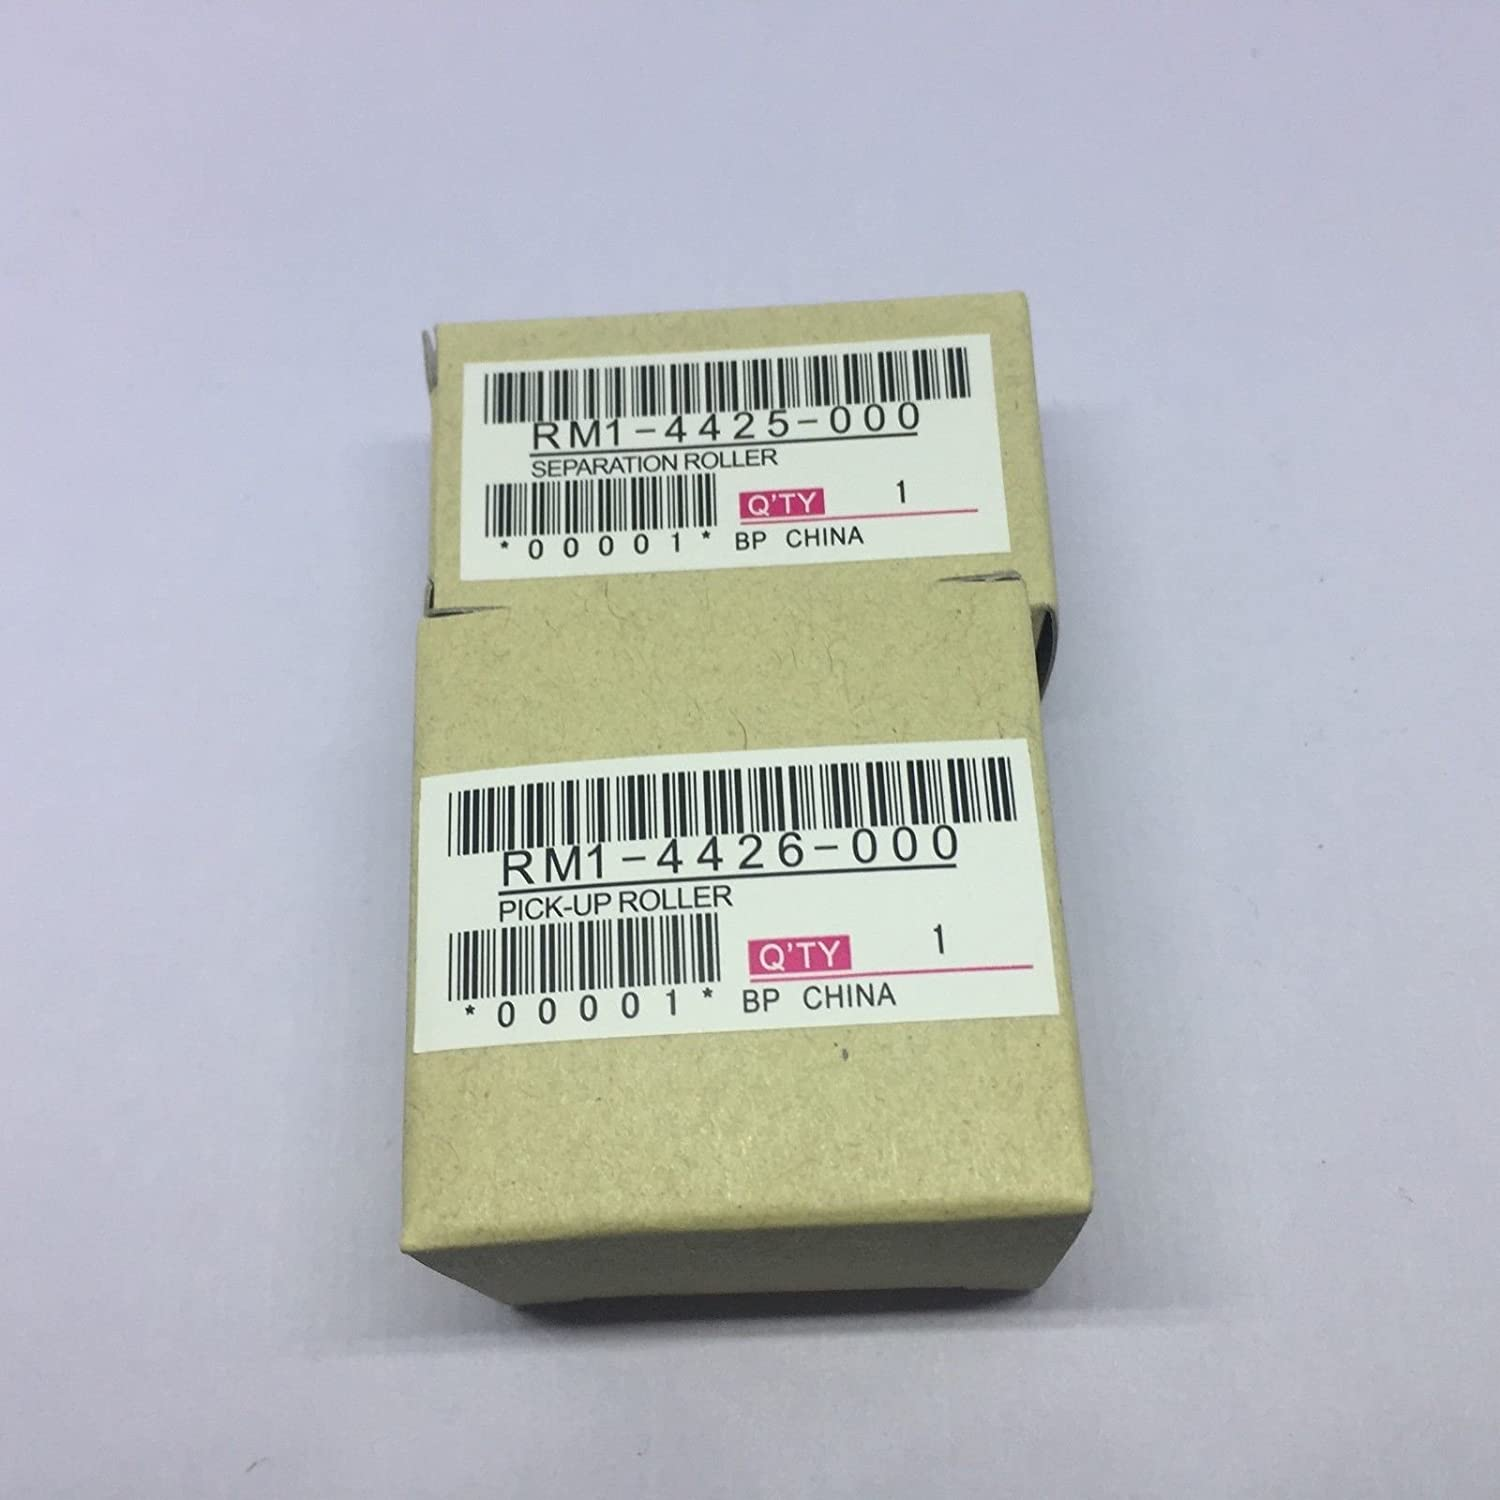 Caoduren 1 Rm1 4425 000 4426 Pick Up Roller Tray Hp Laserjet P2035 P2055 M401 Separation Pad Pickup For Electronics